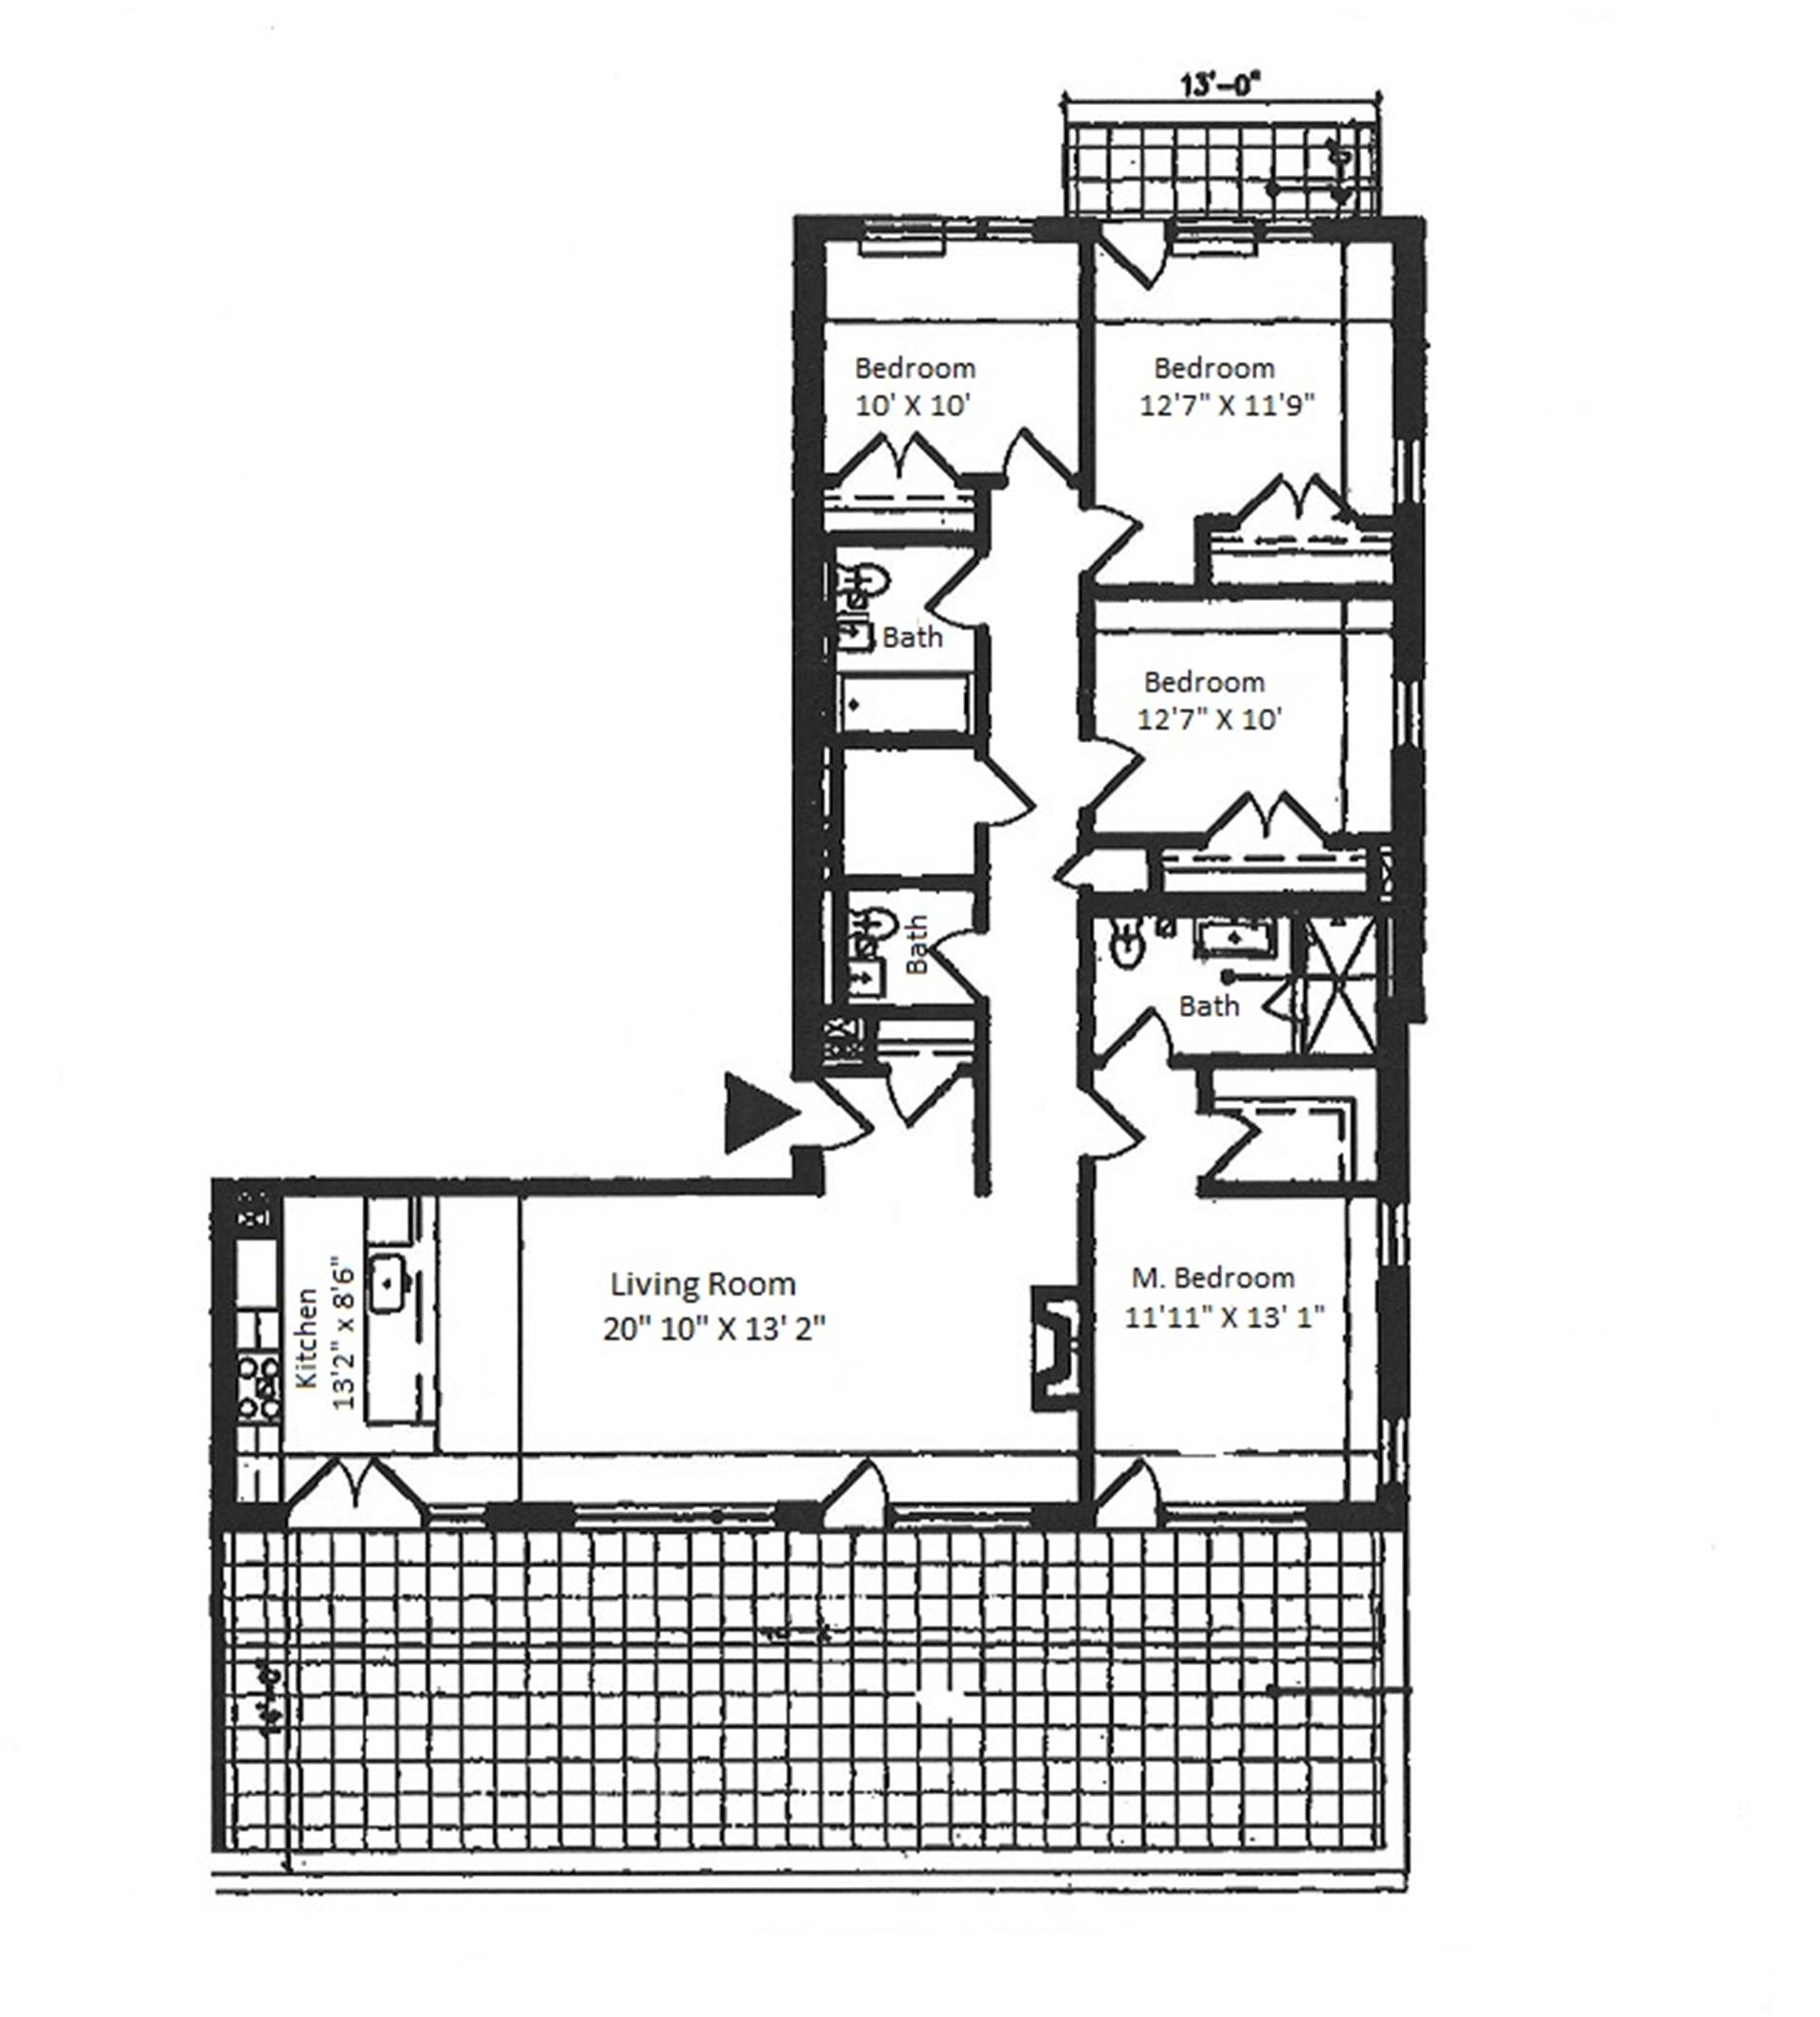 Floor plan of 154 Attorney Street, 701 - Lower East Side, New York